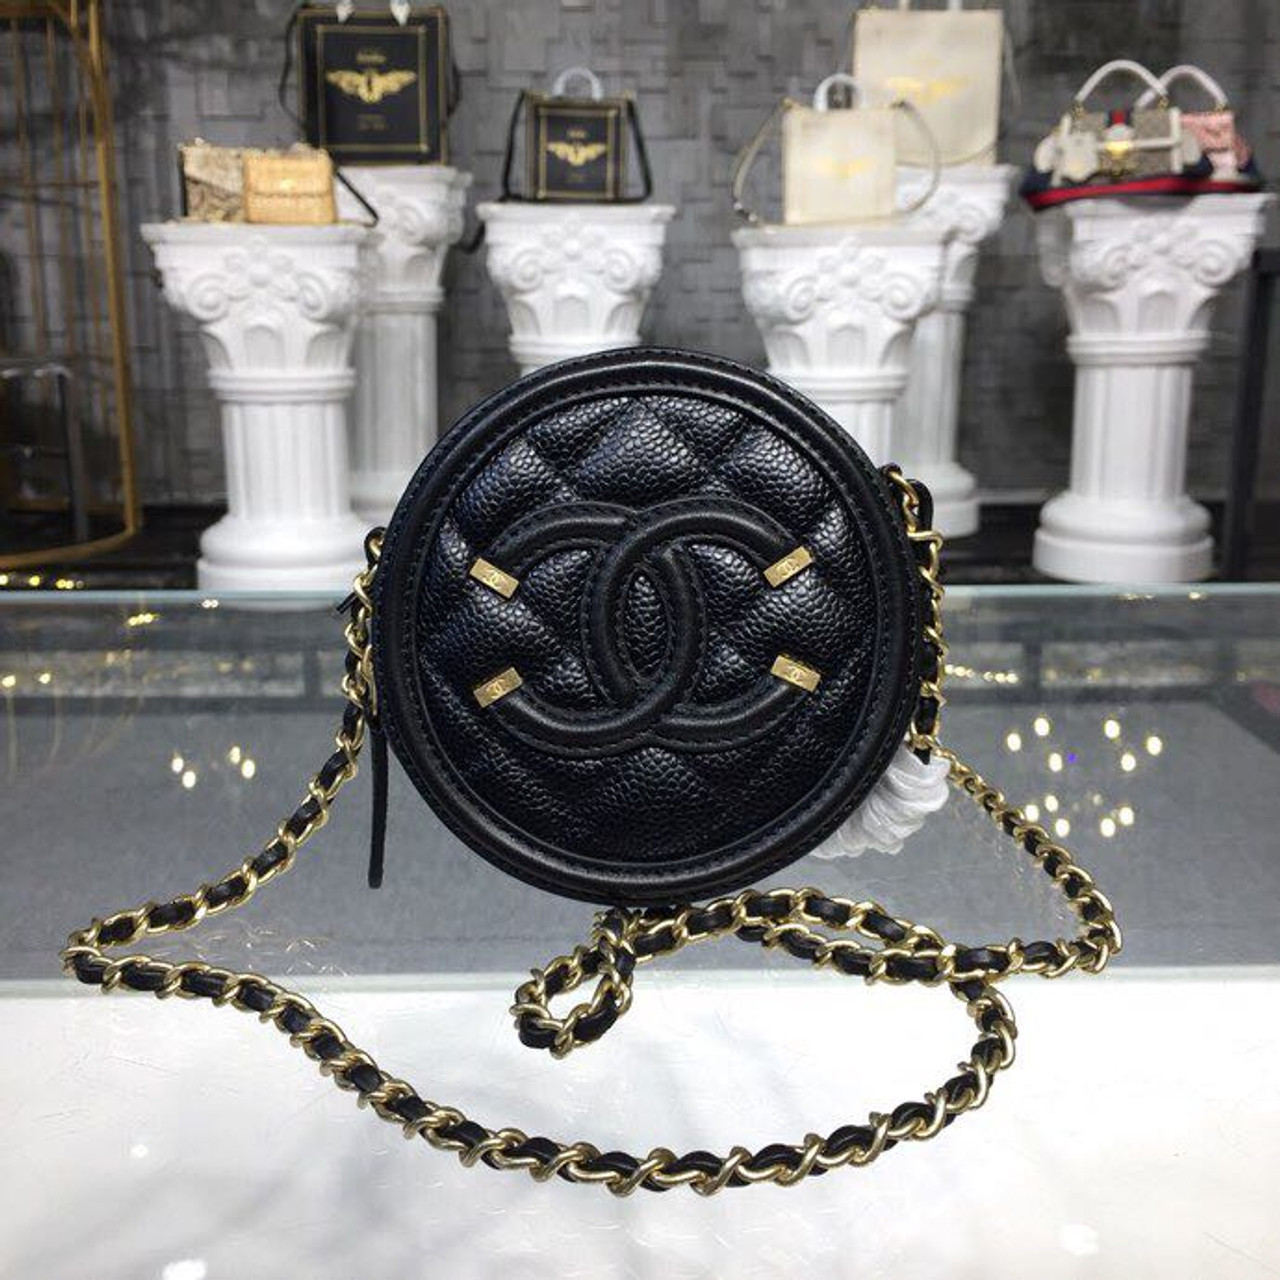 0ea710208f00 CC Filigree Grained Round Clutch with Chain Bag A81599 12cm Gold Hardware  Caviar Lambskin Leather Cruise